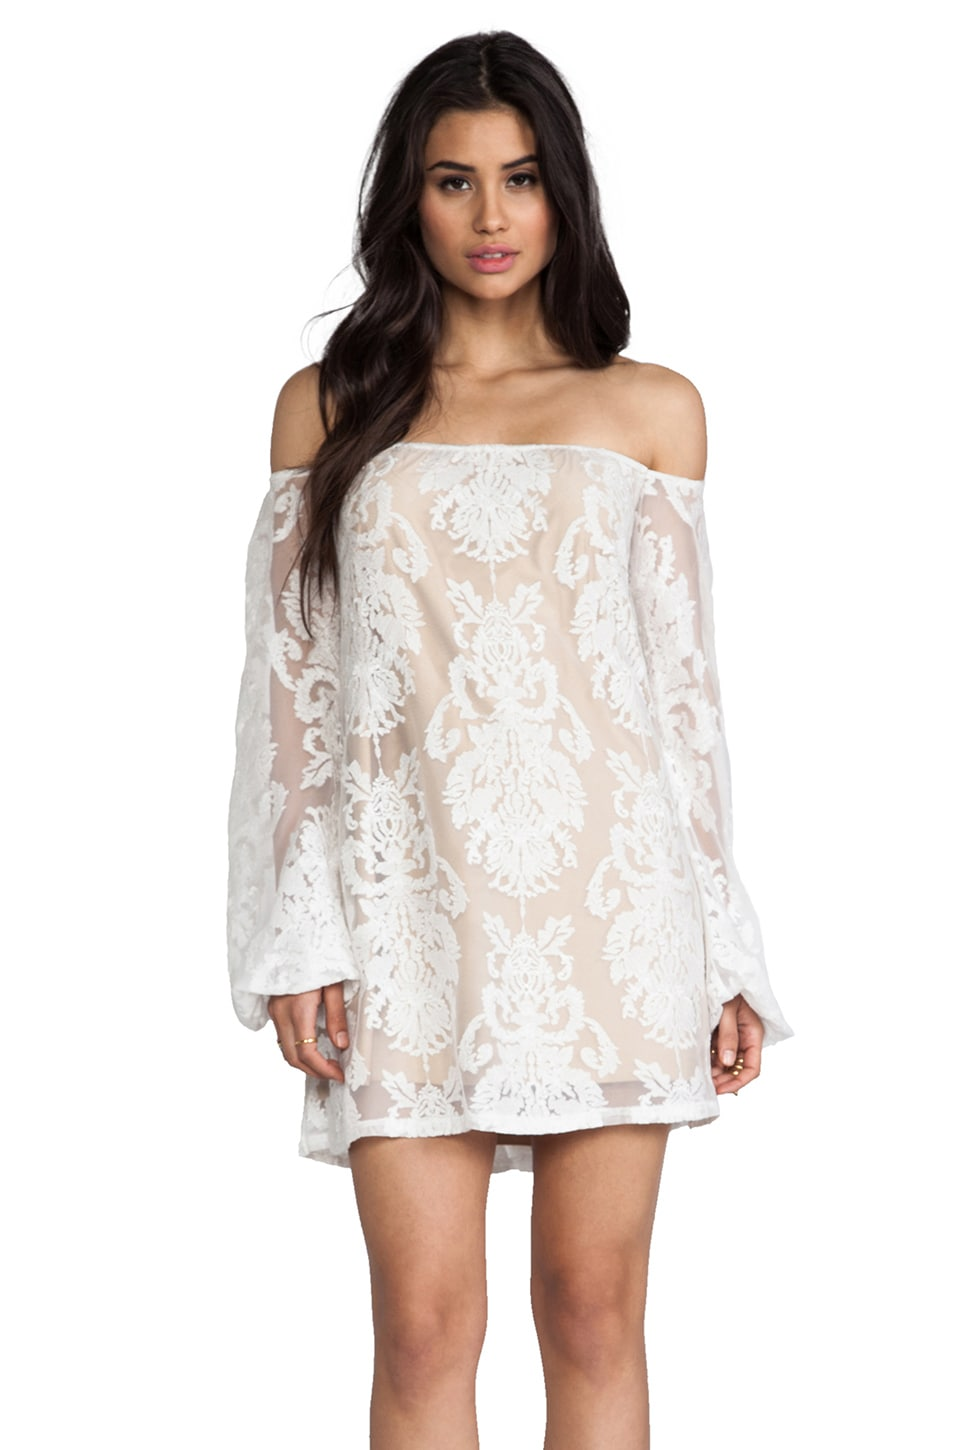 For Love & Lemons Precioso Dress in Ivory